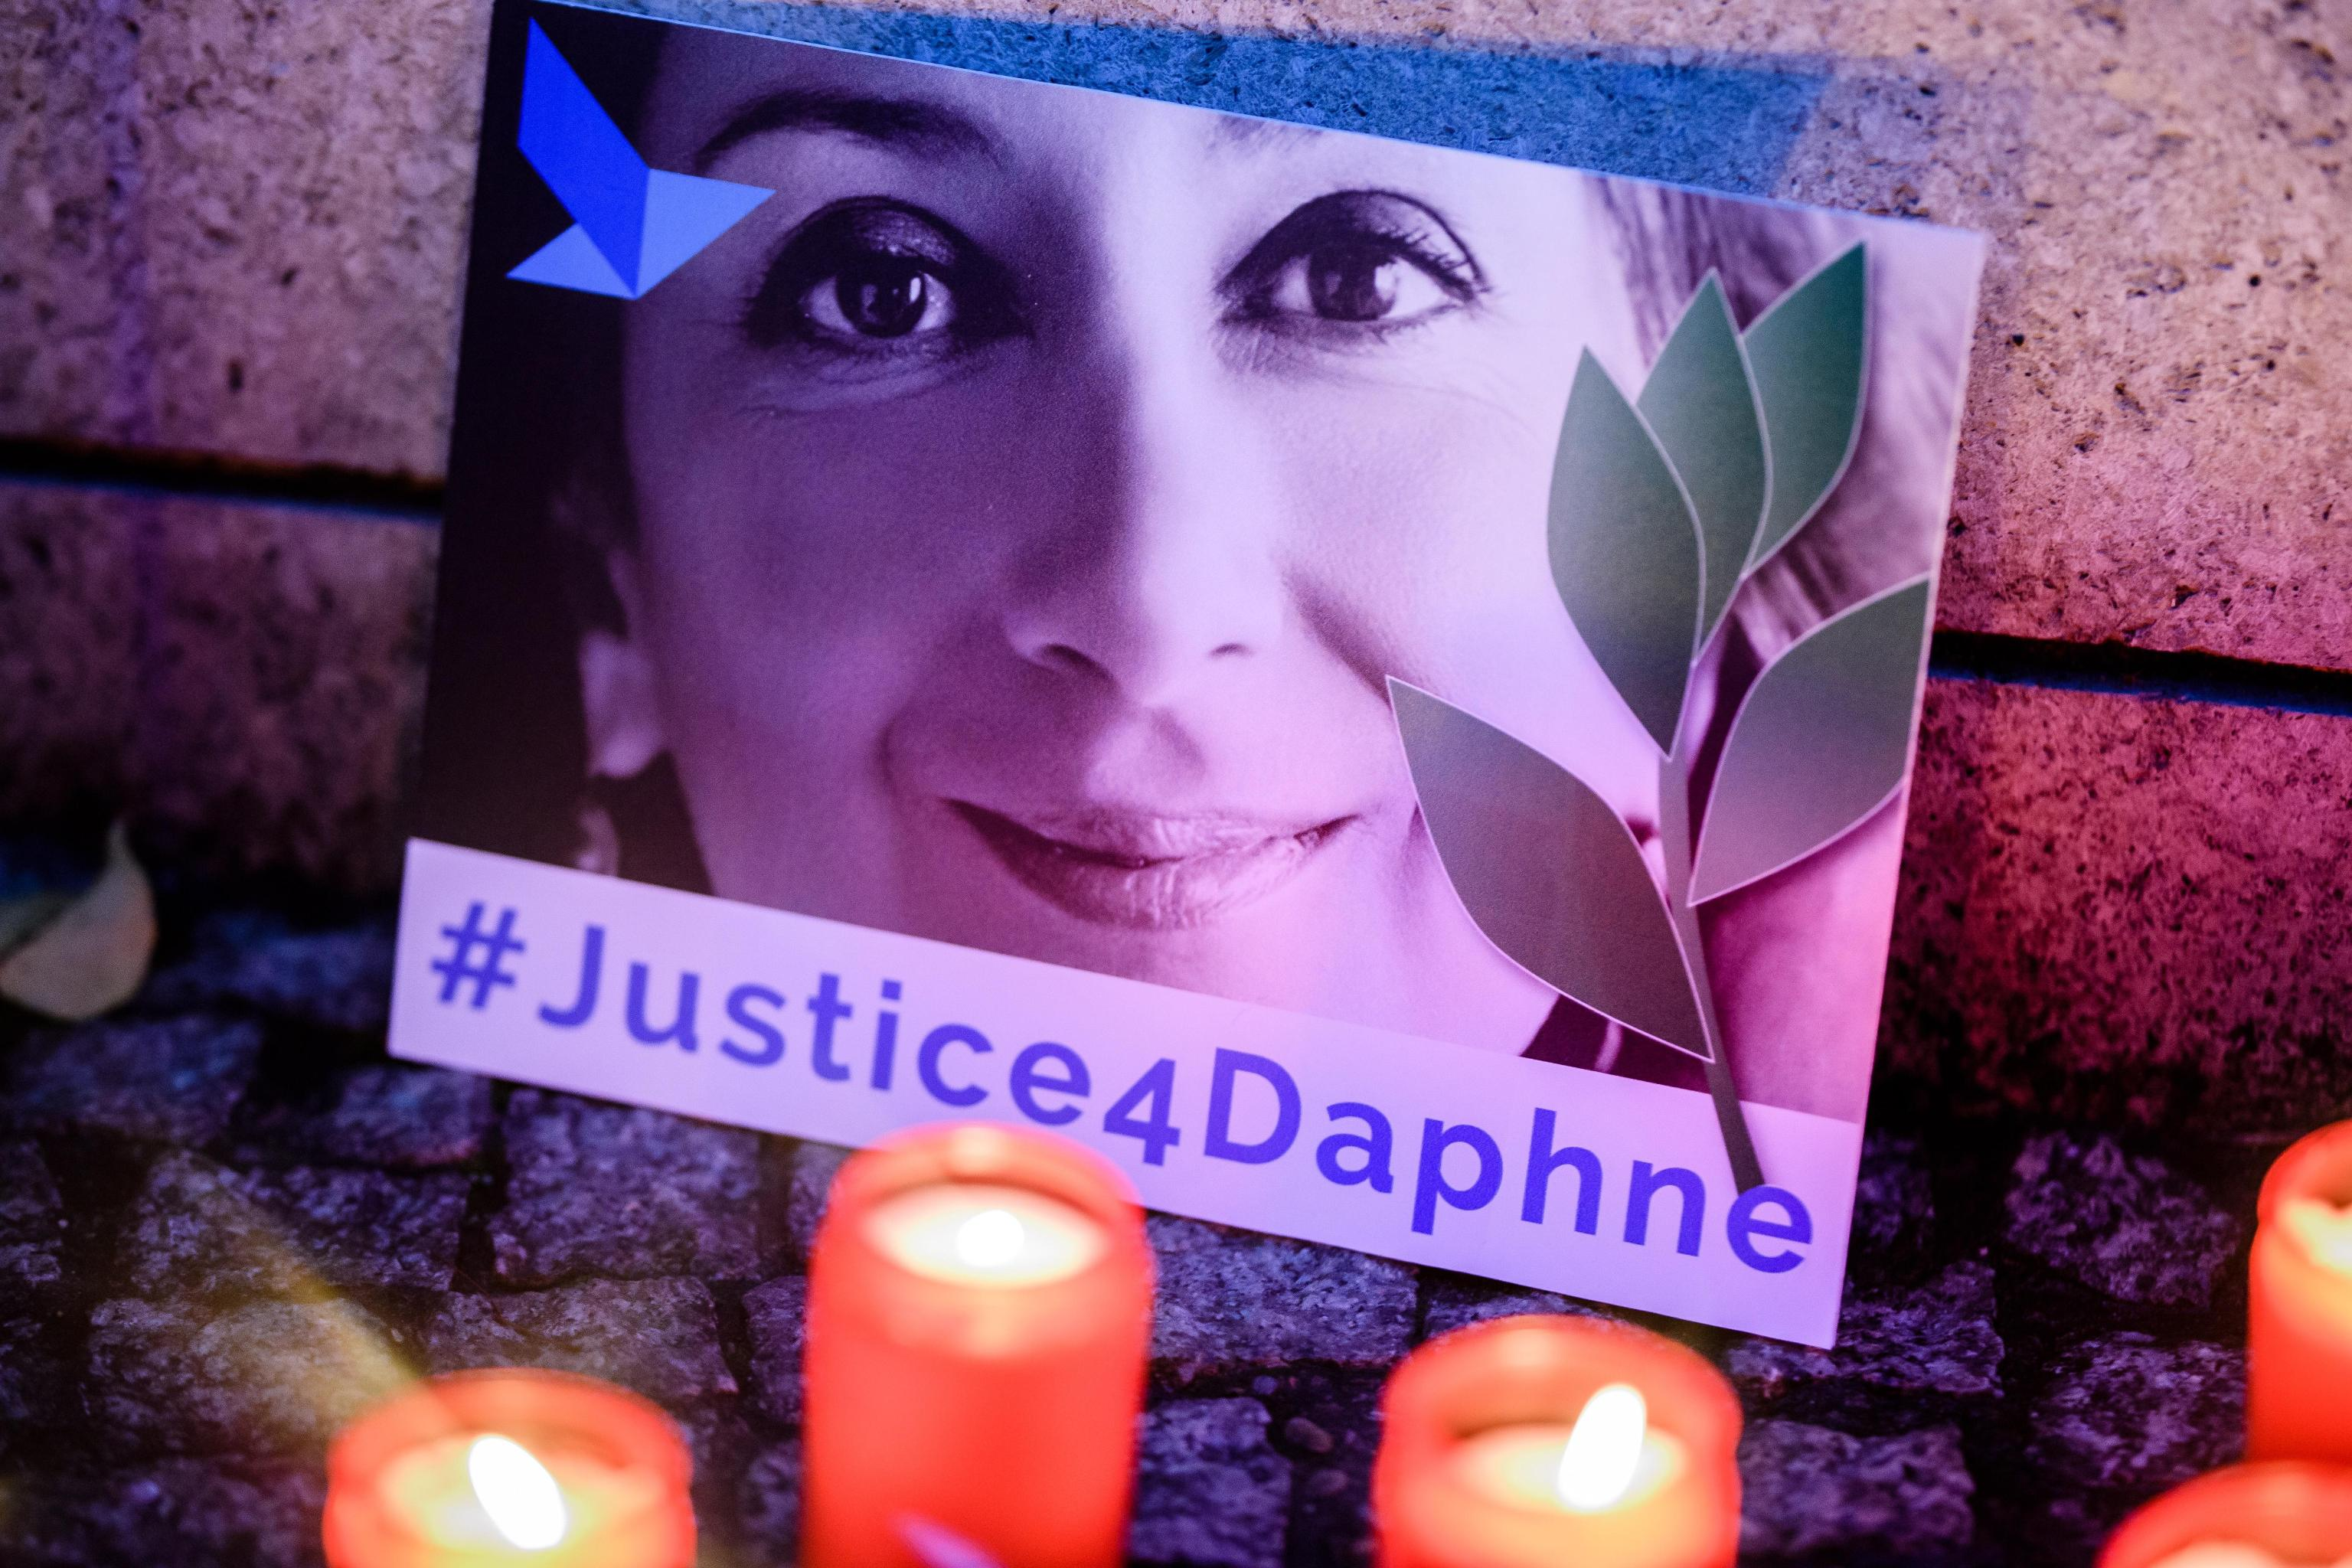 epa07925848 'Justice four Daphne' is written on a cardboard showing a photo of Daphne Caruana Galizia, during a picket in front of the Maltese embassy for murdered journalist Daphne Caruana Galizia in Berlin, Germany, 16 October 2019. Reporters Without Borders organized a picket for murdered journalist Daphne Caruana Galizia, who was killed on 16 October 2017 in Malta, while investigating the Panama Papers case.  EPA/CLEMENS BILAN